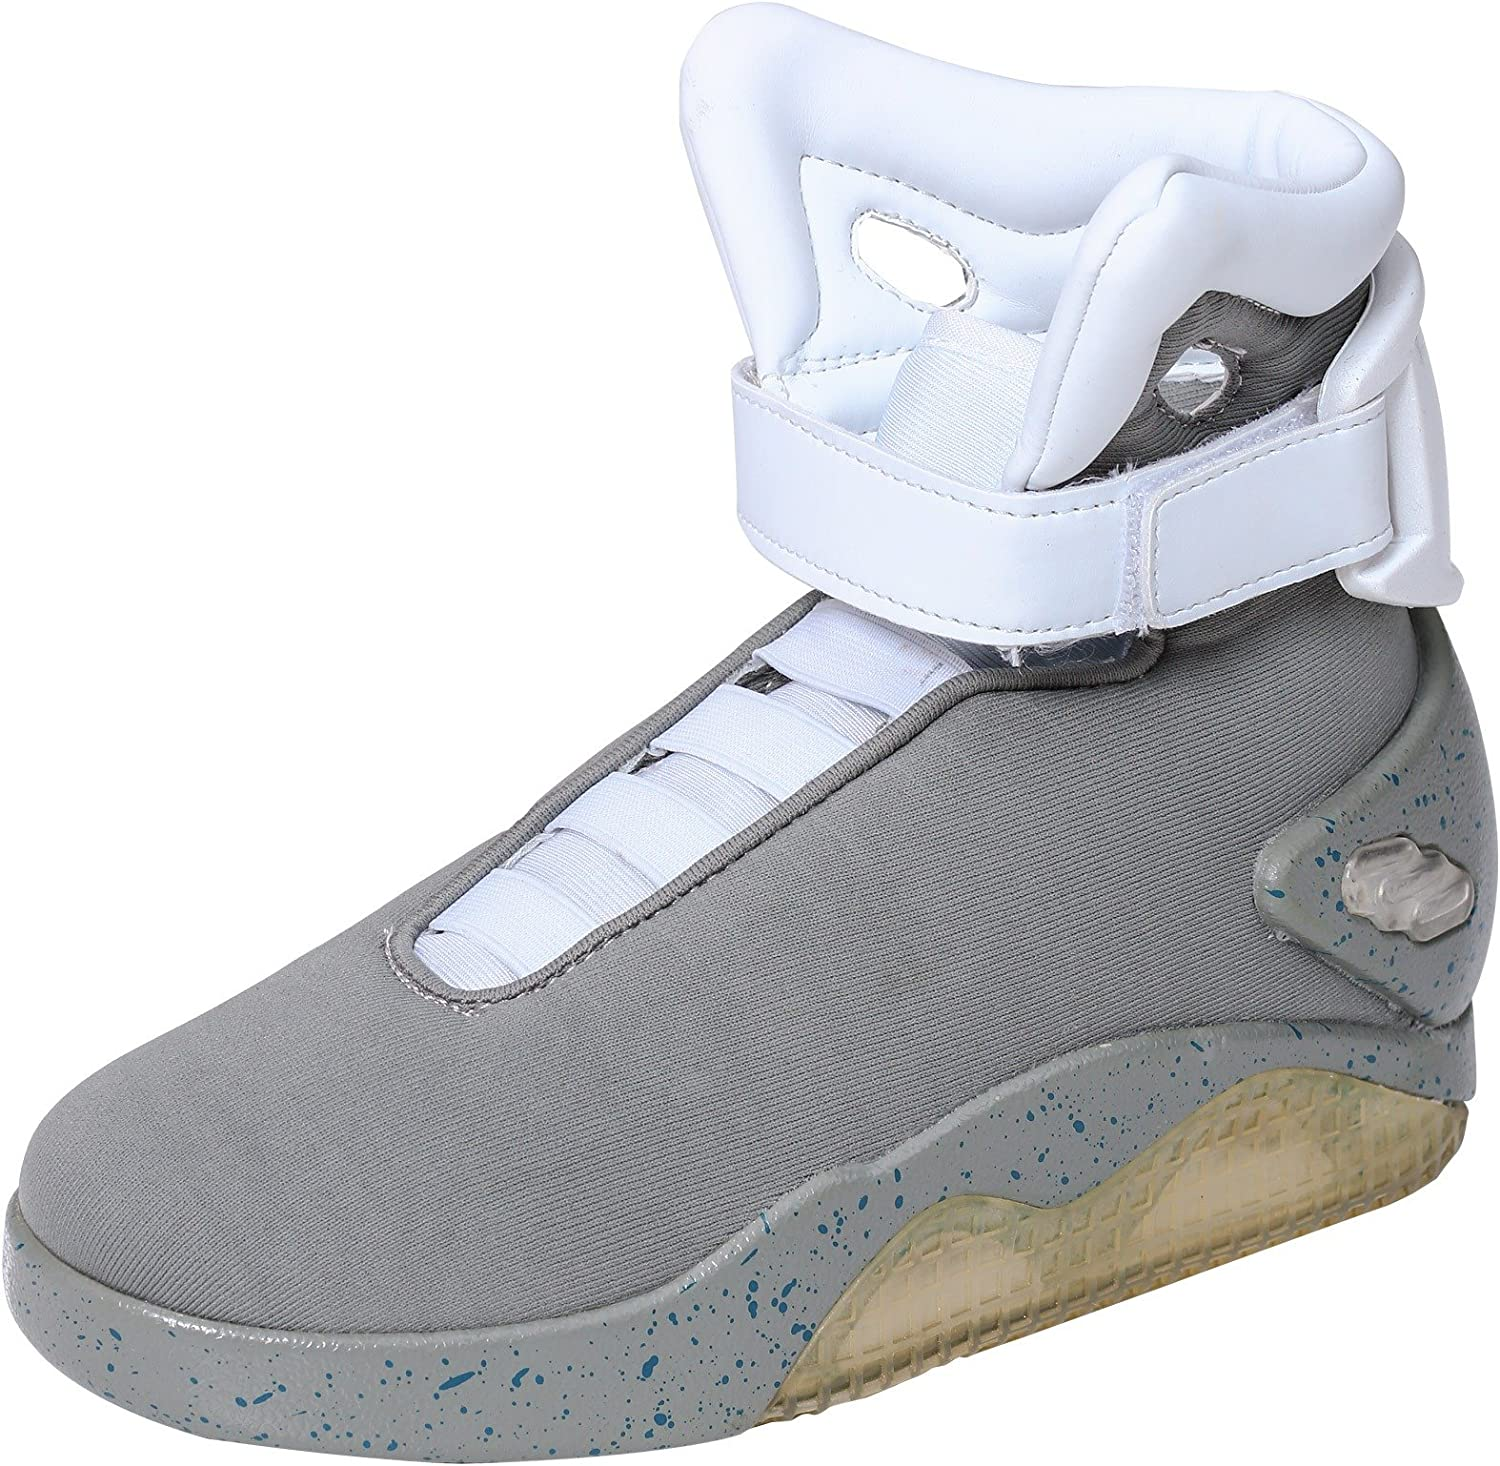 Mal Contribuir Dar permiso  Amazon.com: Back to the Future 2 Light Up Shoes Universal Studios  Officially Licensed: Clothing